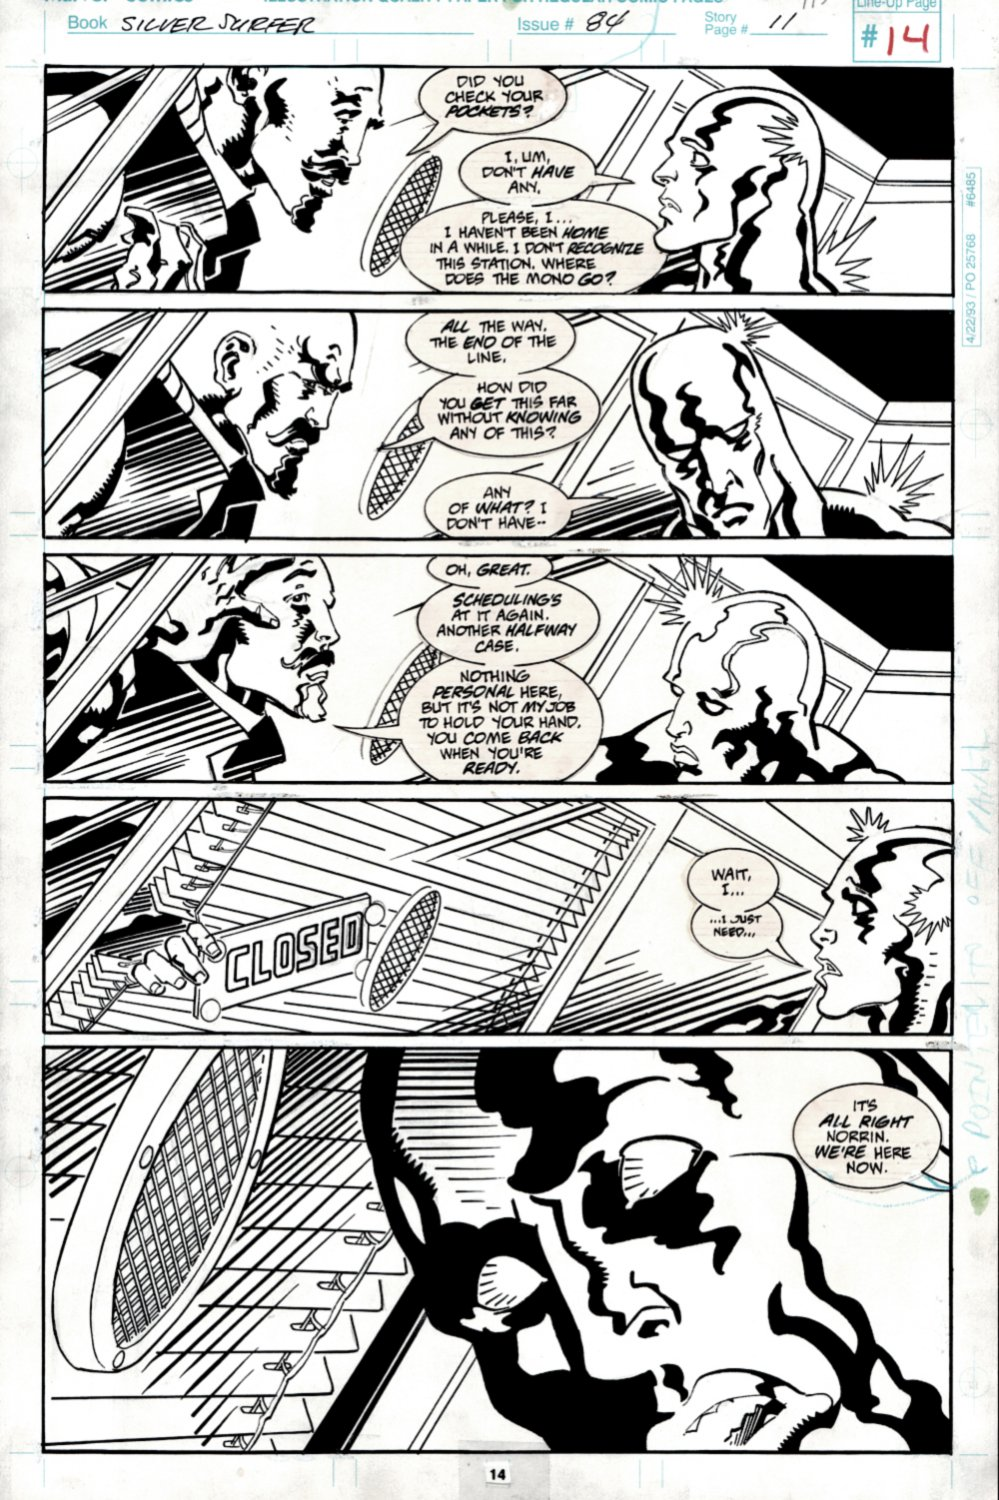 Silver Surfer #84 p 11 (SURFER IN EVERY PANEL AS HE TRIES TO MEET HIS DEAD PARENTS!) 1993